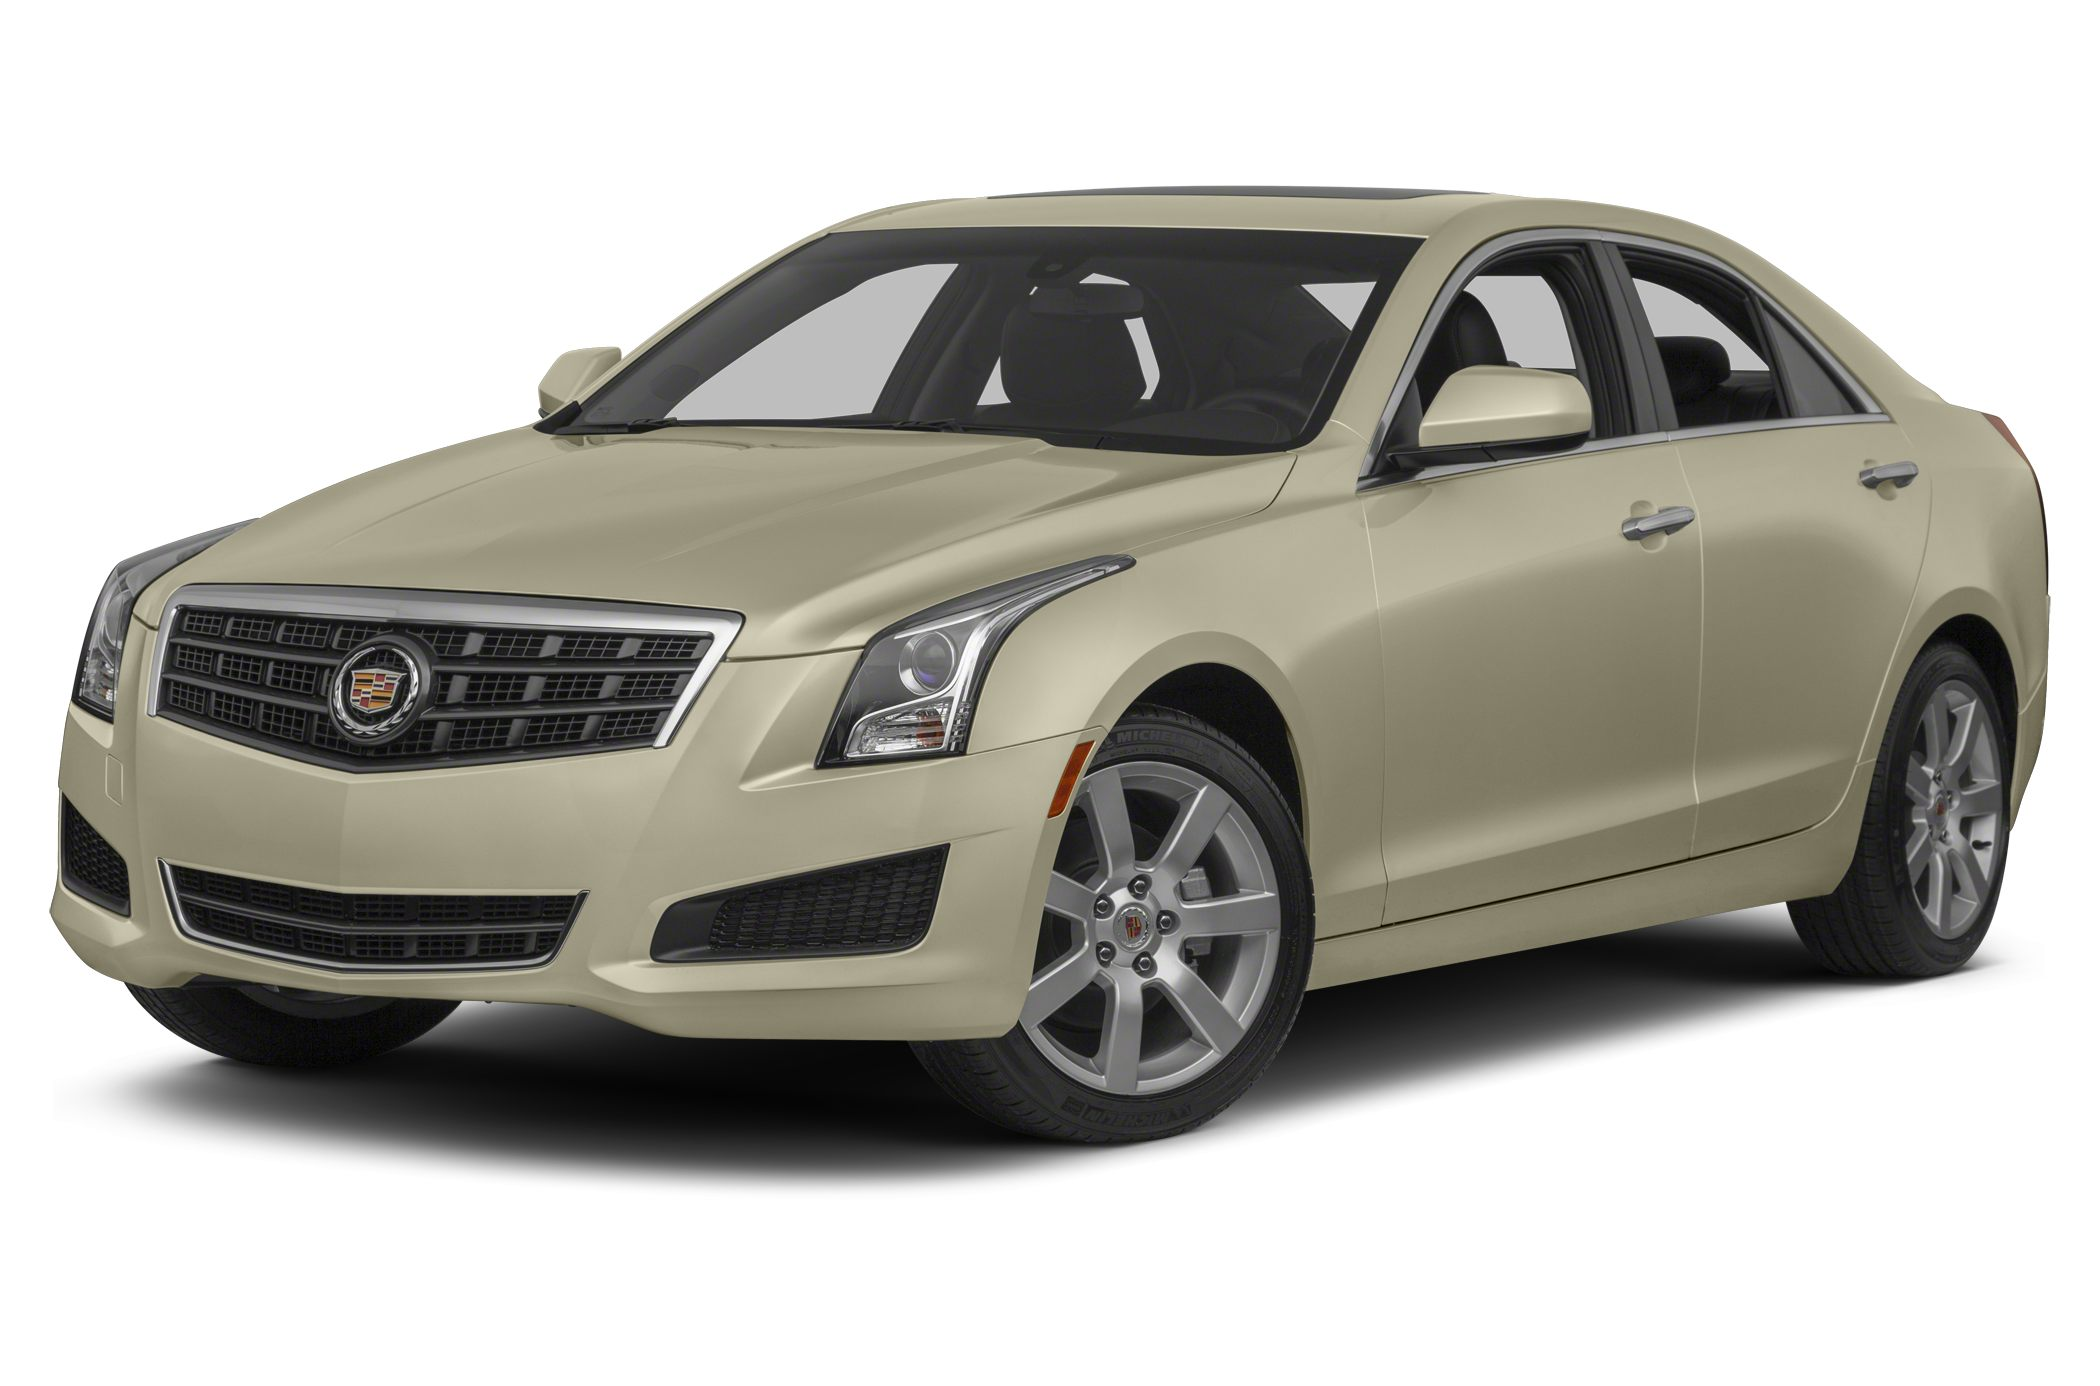 2014 Cadillac ATS 2.0L Turbo Luxury Sedan for sale in Neosho for $46,480 with 1 miles